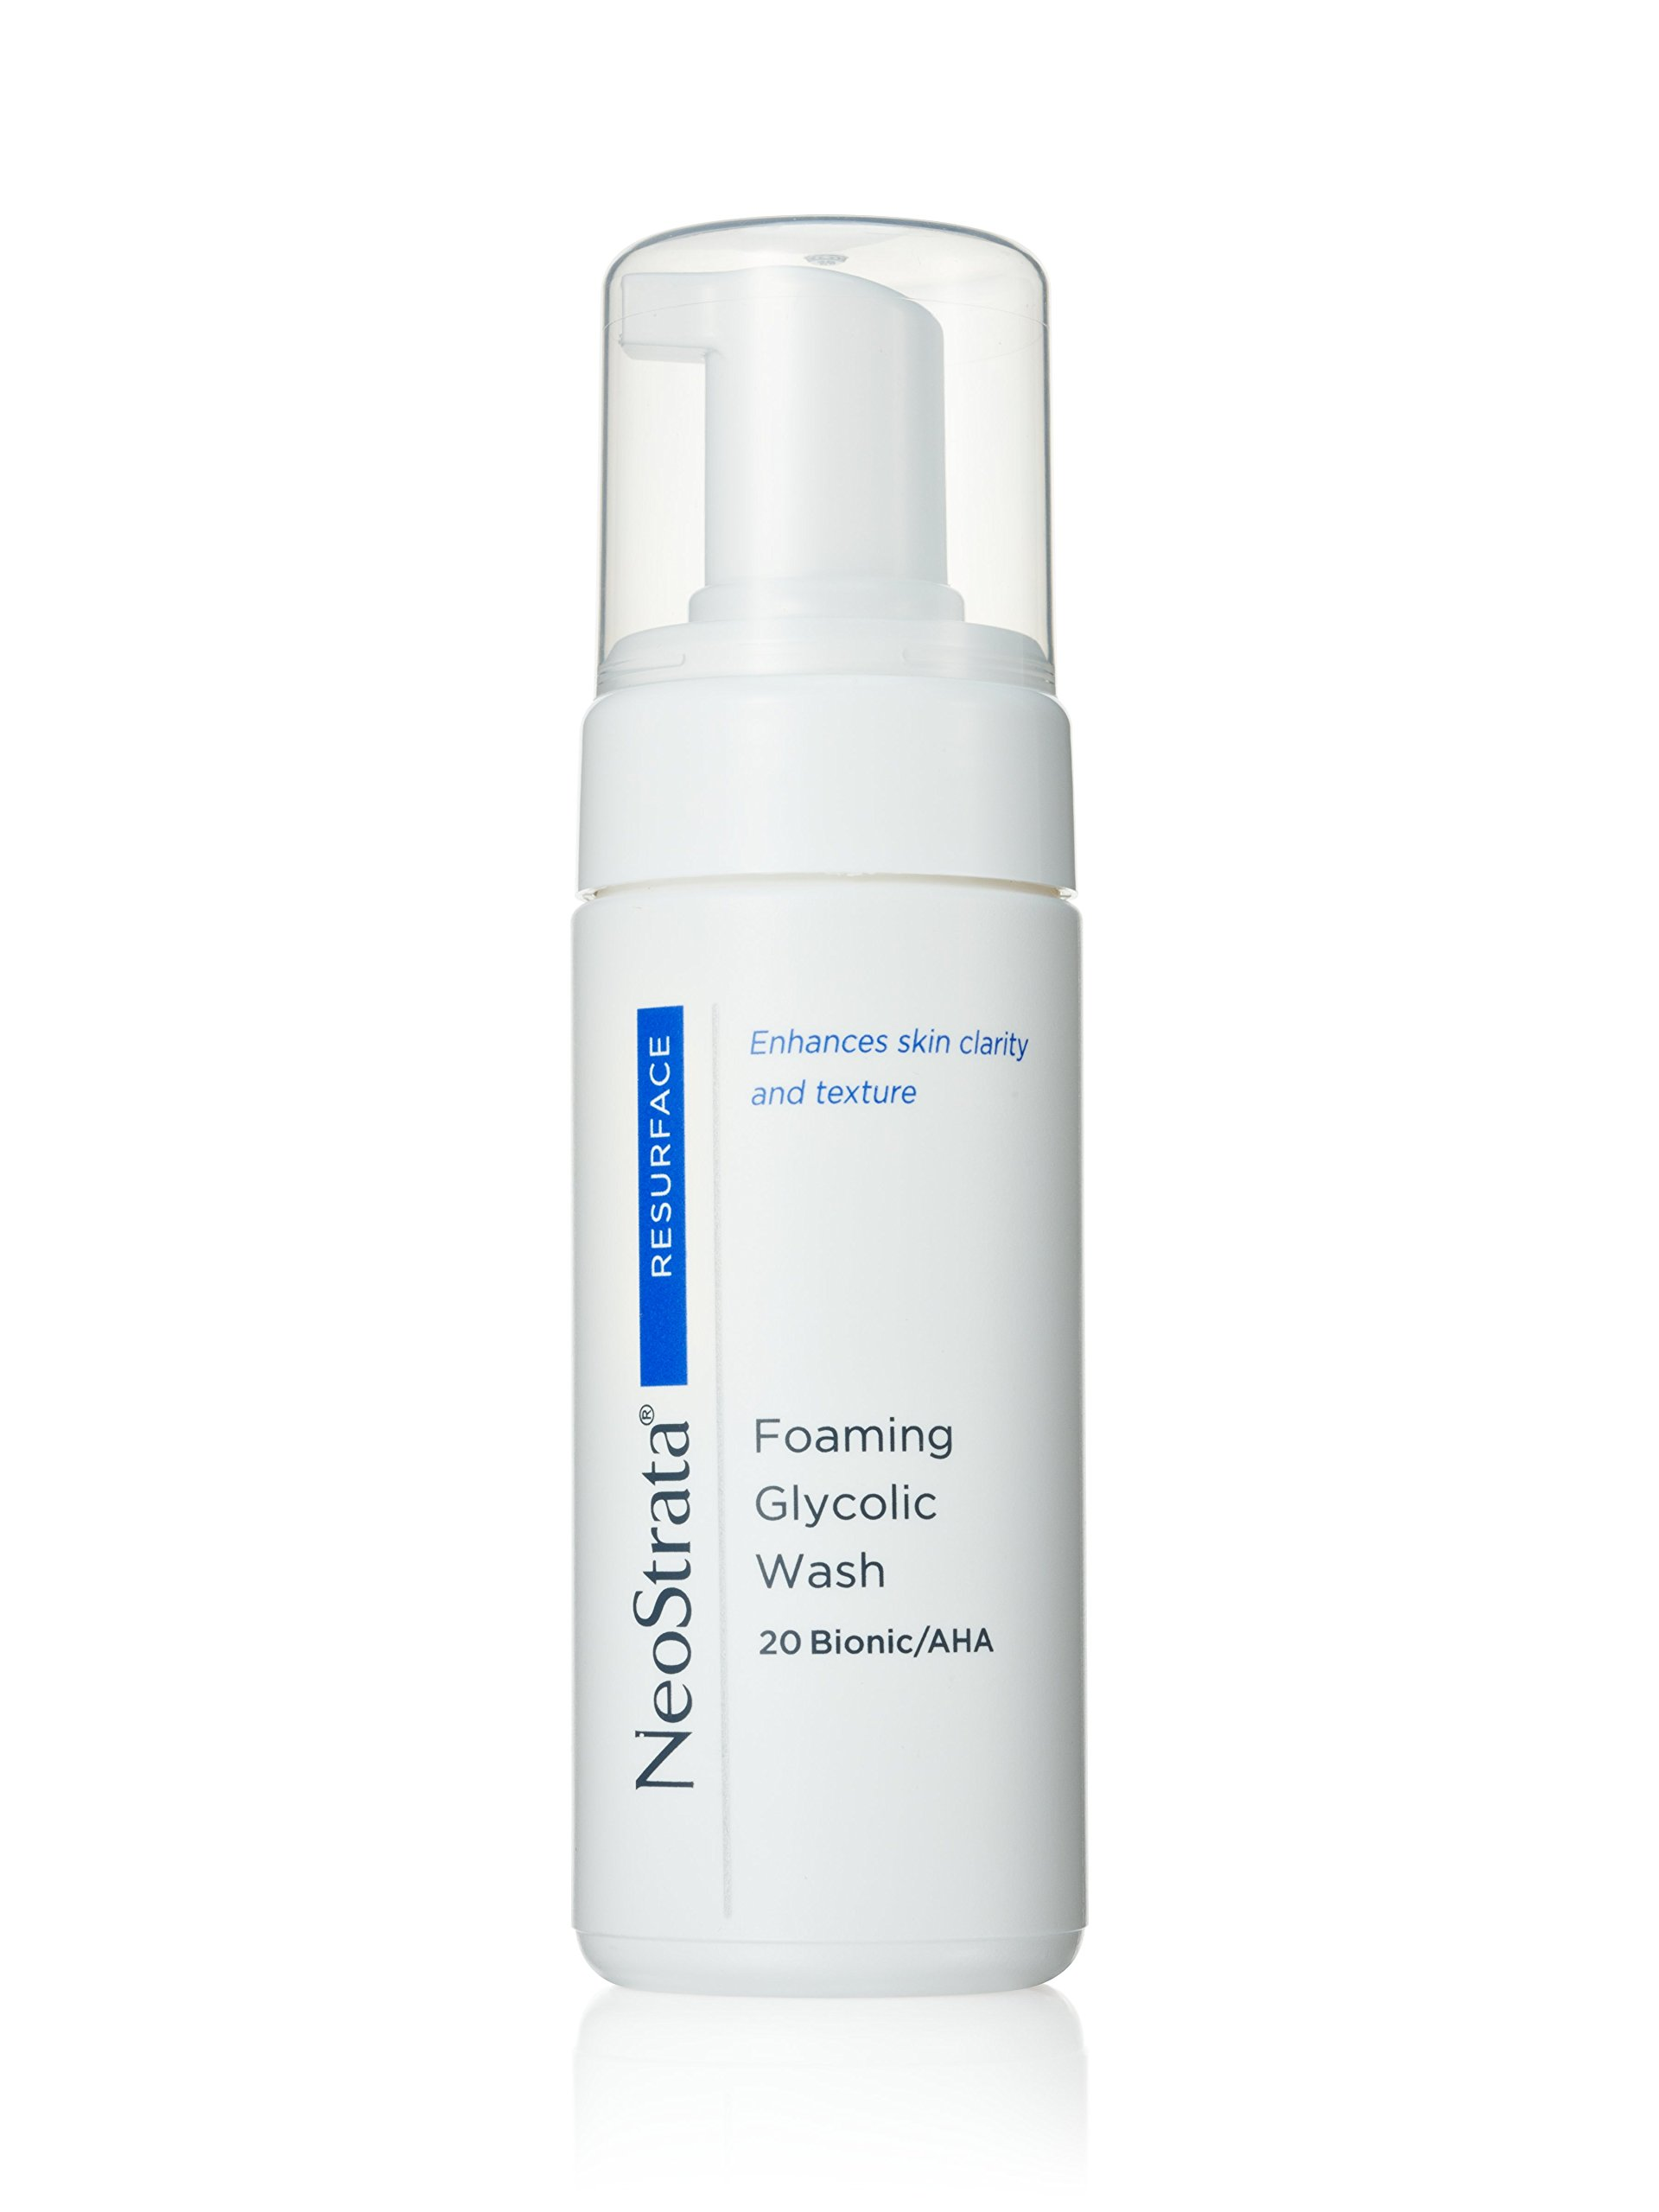 NeoStrata Foaming Glycolic Wash, 3.4 Fluid Ounce